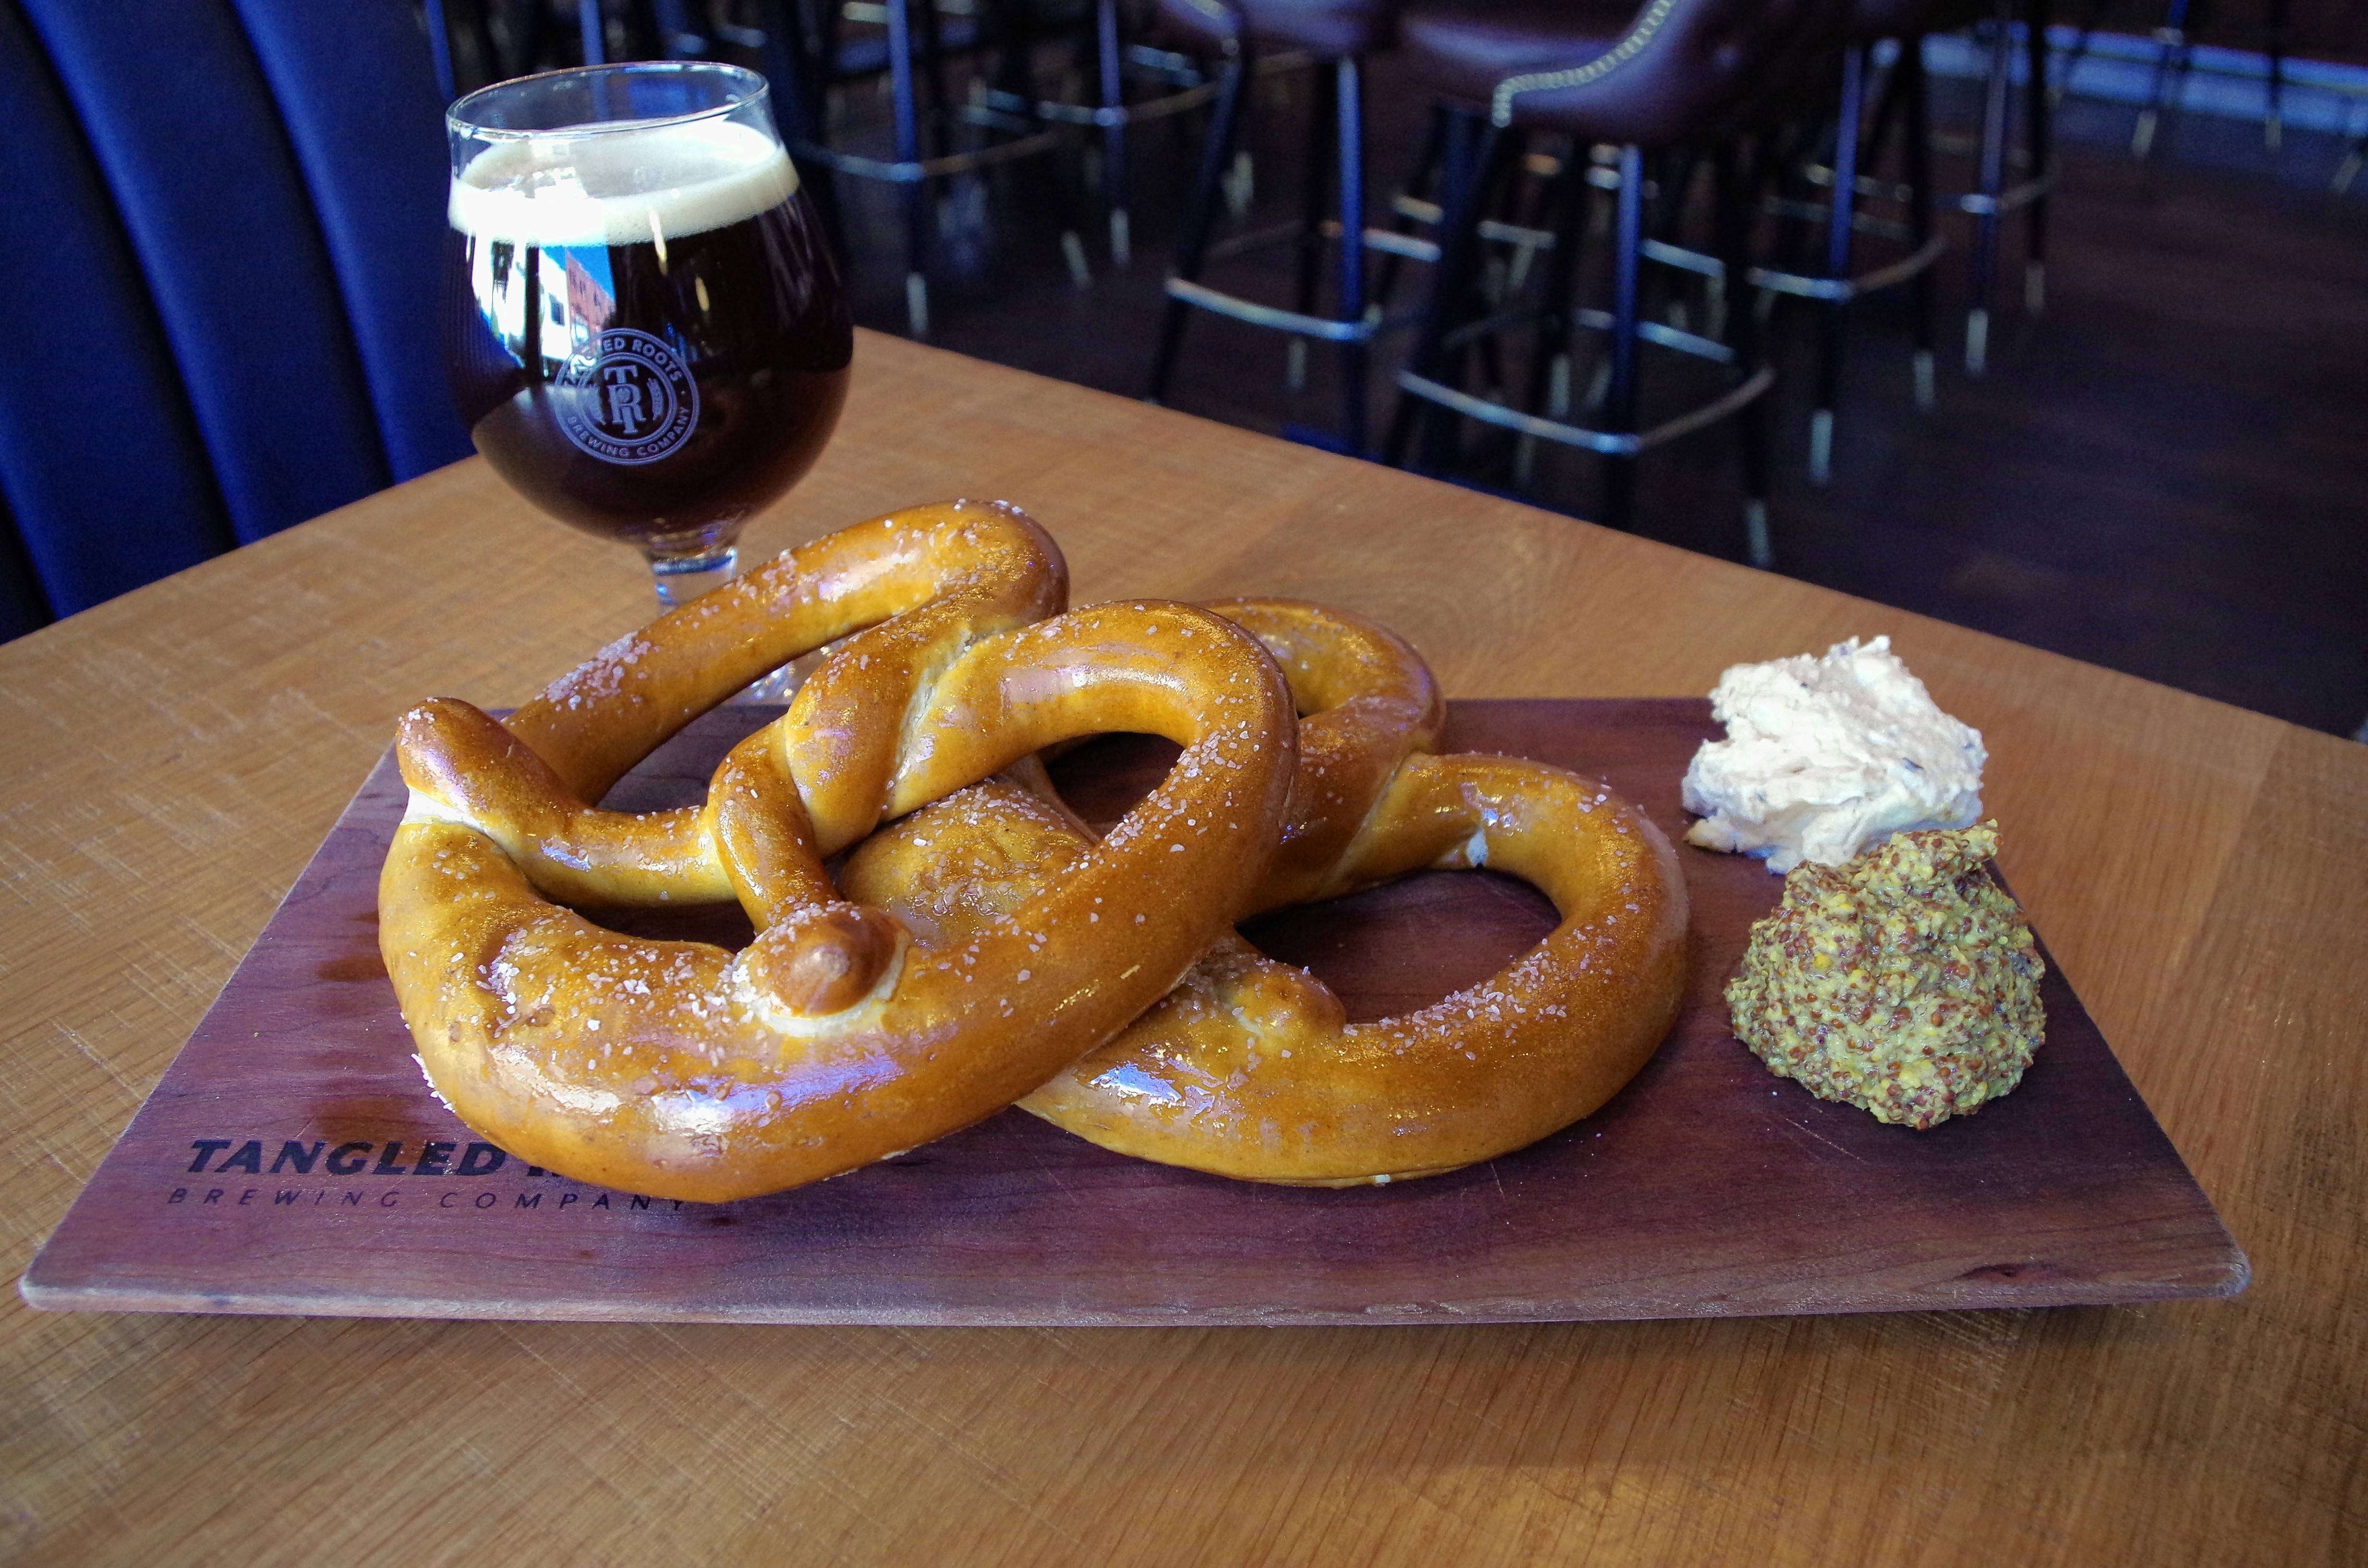 The Lone Buffalo restaurant is part of Tangled Roots Brewing Company in Ottawa, where pretzels are served with house-made obatzda, a Bavarian cheese delicacy.